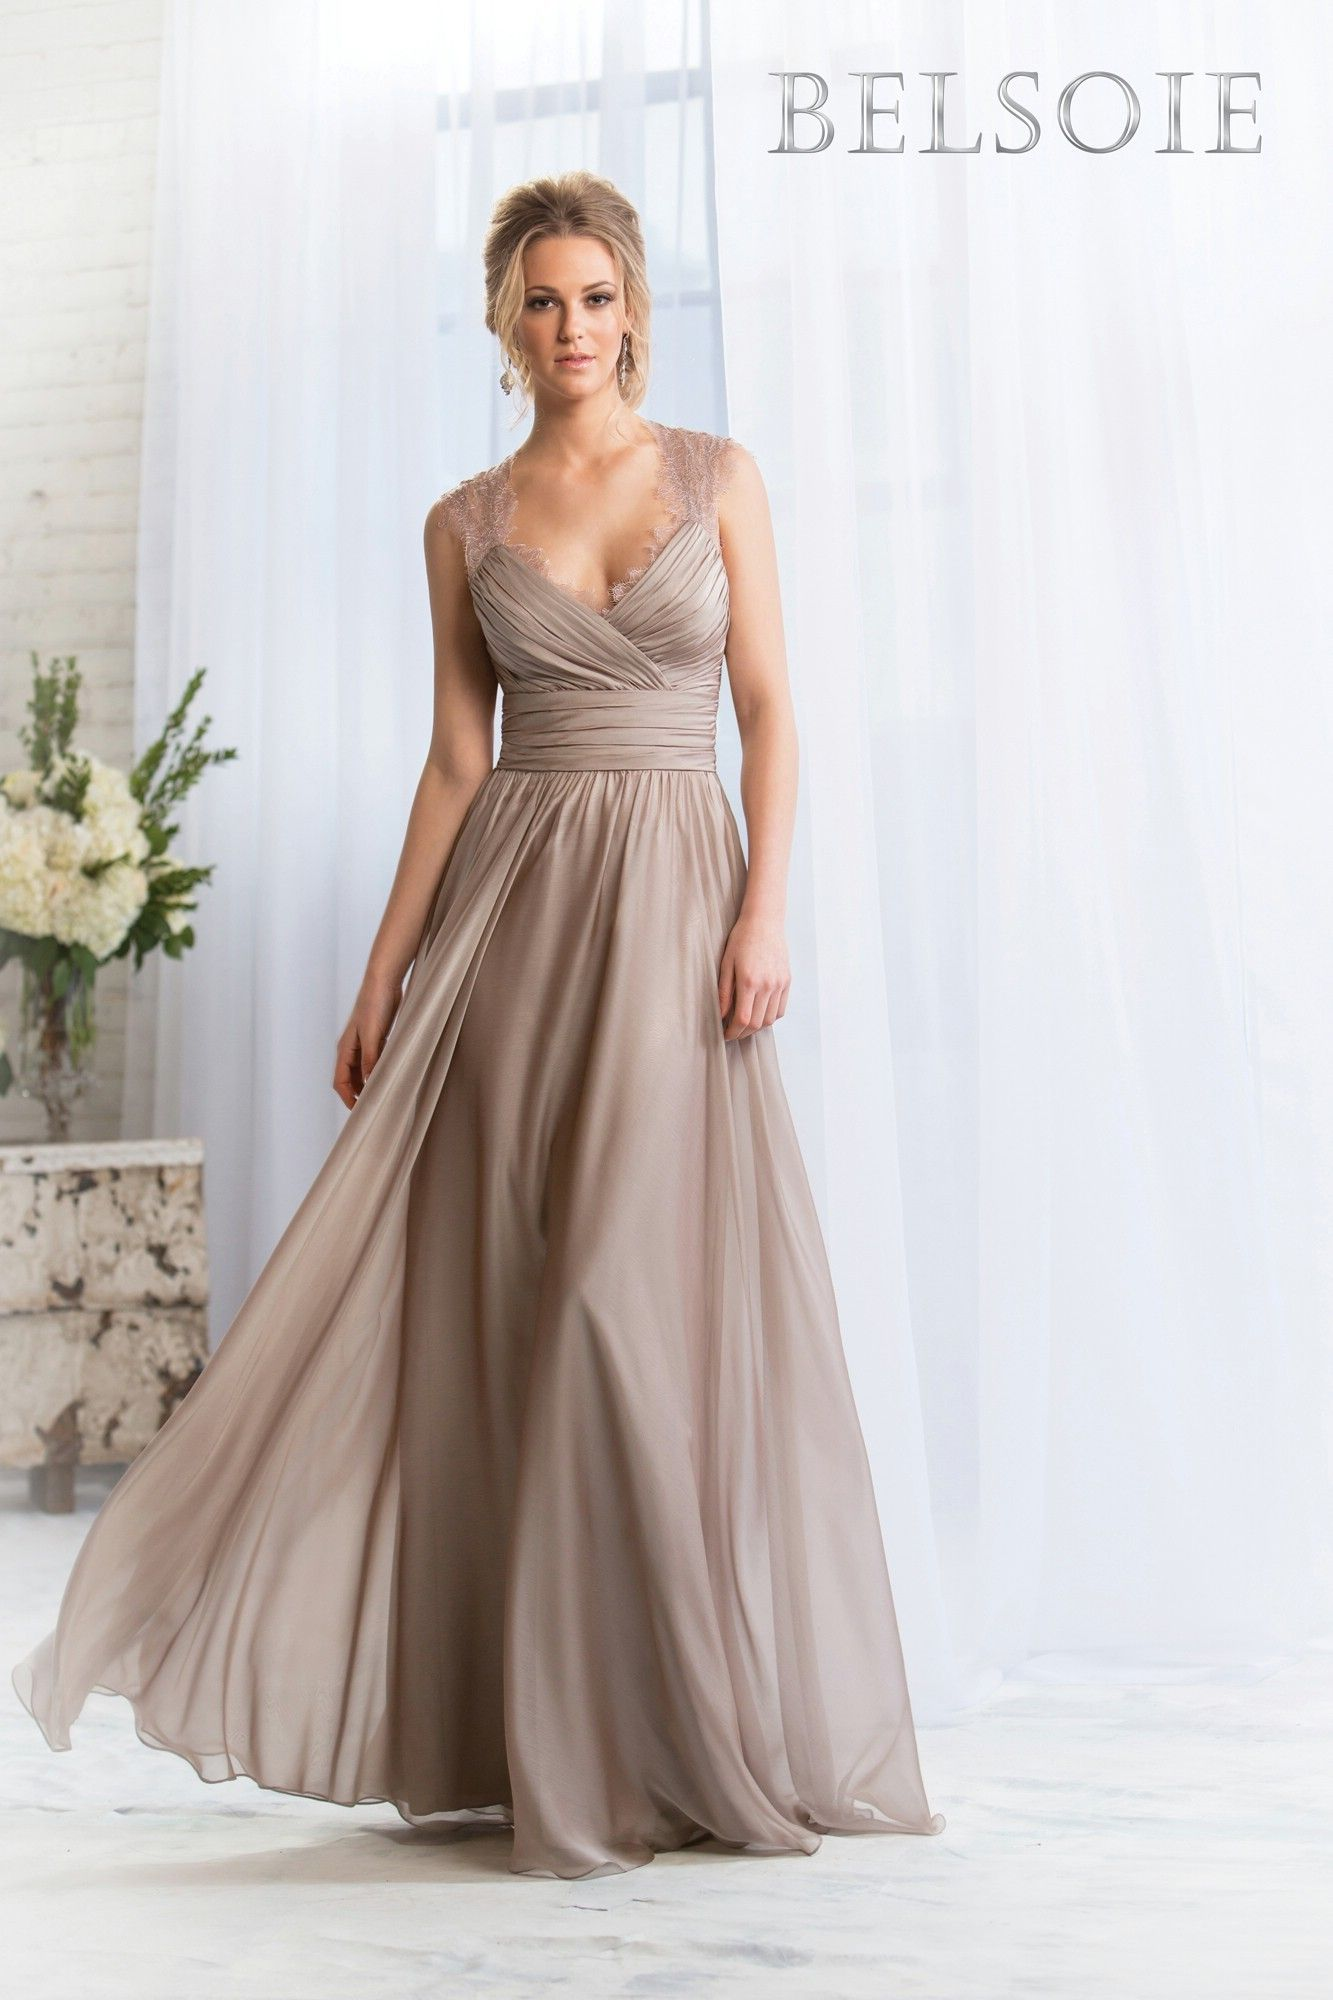 Jasmine belsoie bridesmaid dresses style l164057 wedding dress ombrellifo Images